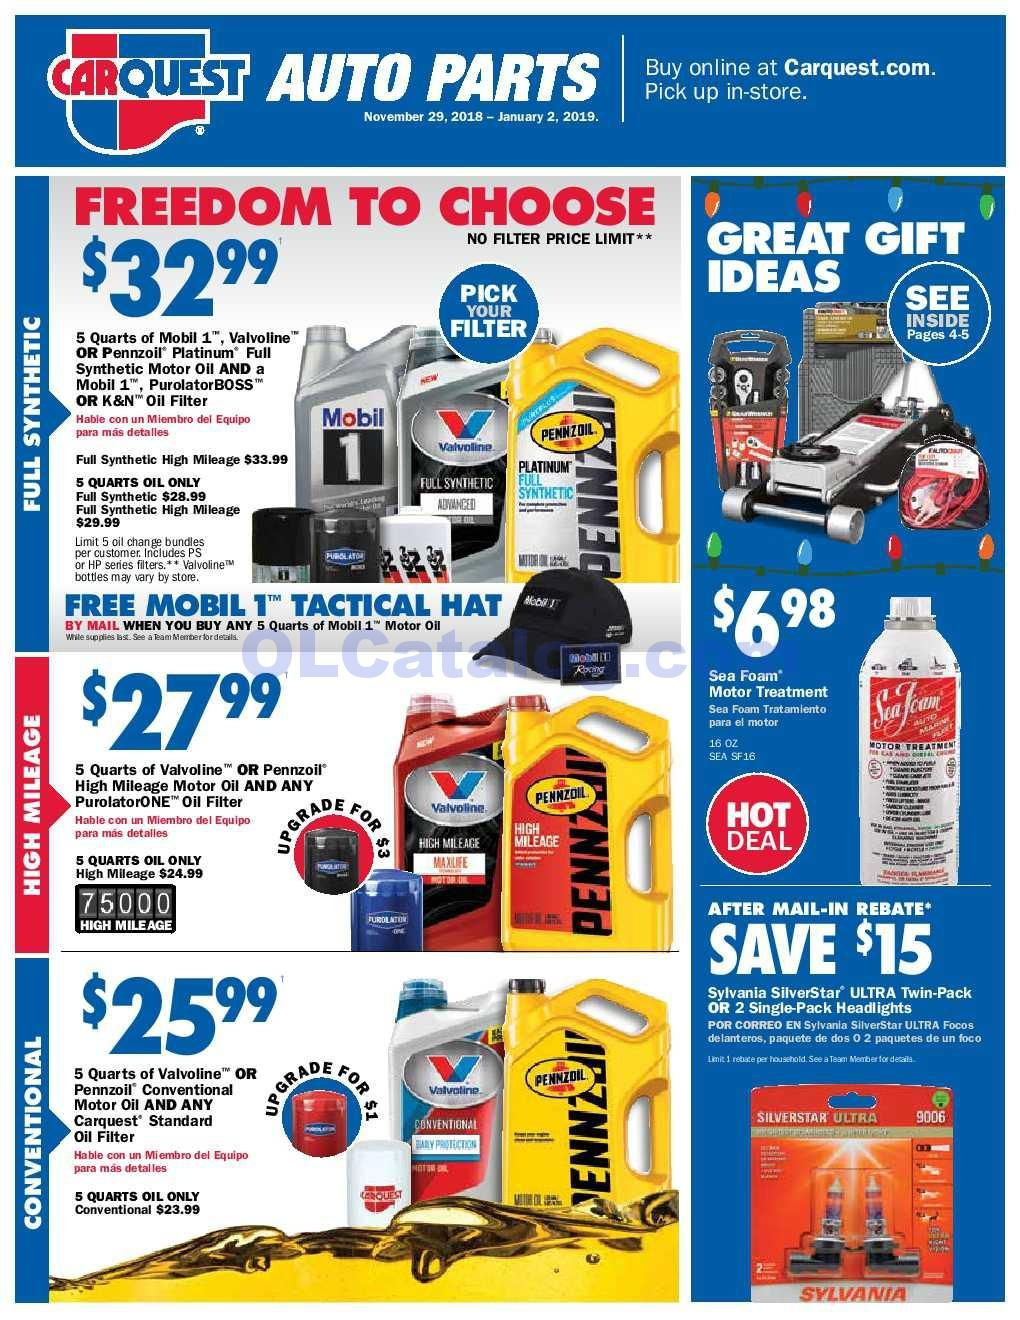 Carquest Auto Parts Near Me >> Carquest Auto Parts Flyer November 29 2018 January 2